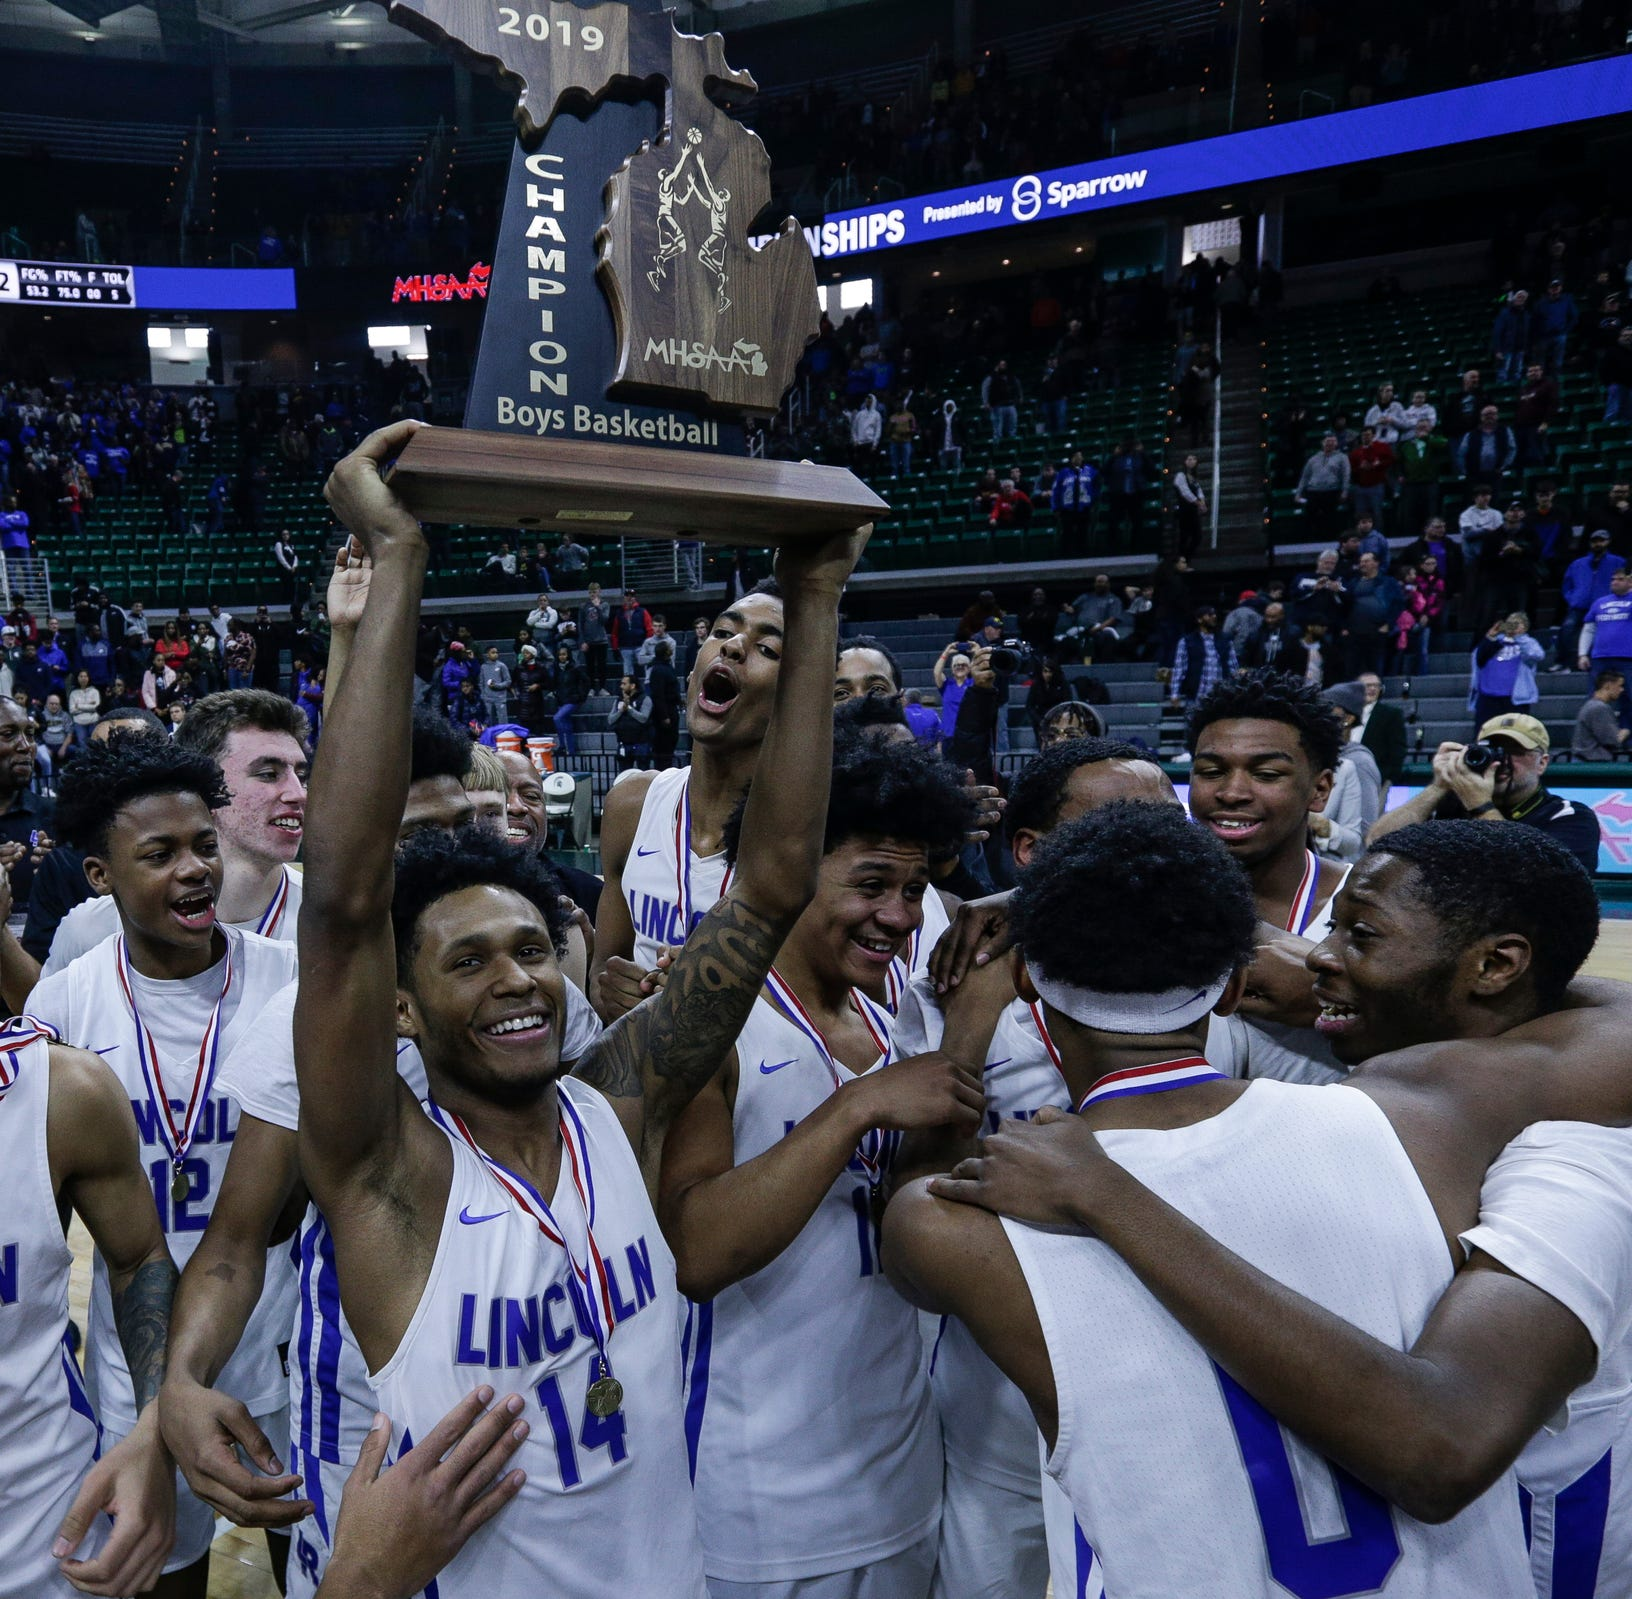 Ypslianti Lincoln beats U-D Jesuit on buzzer beater to win MHSAA state title